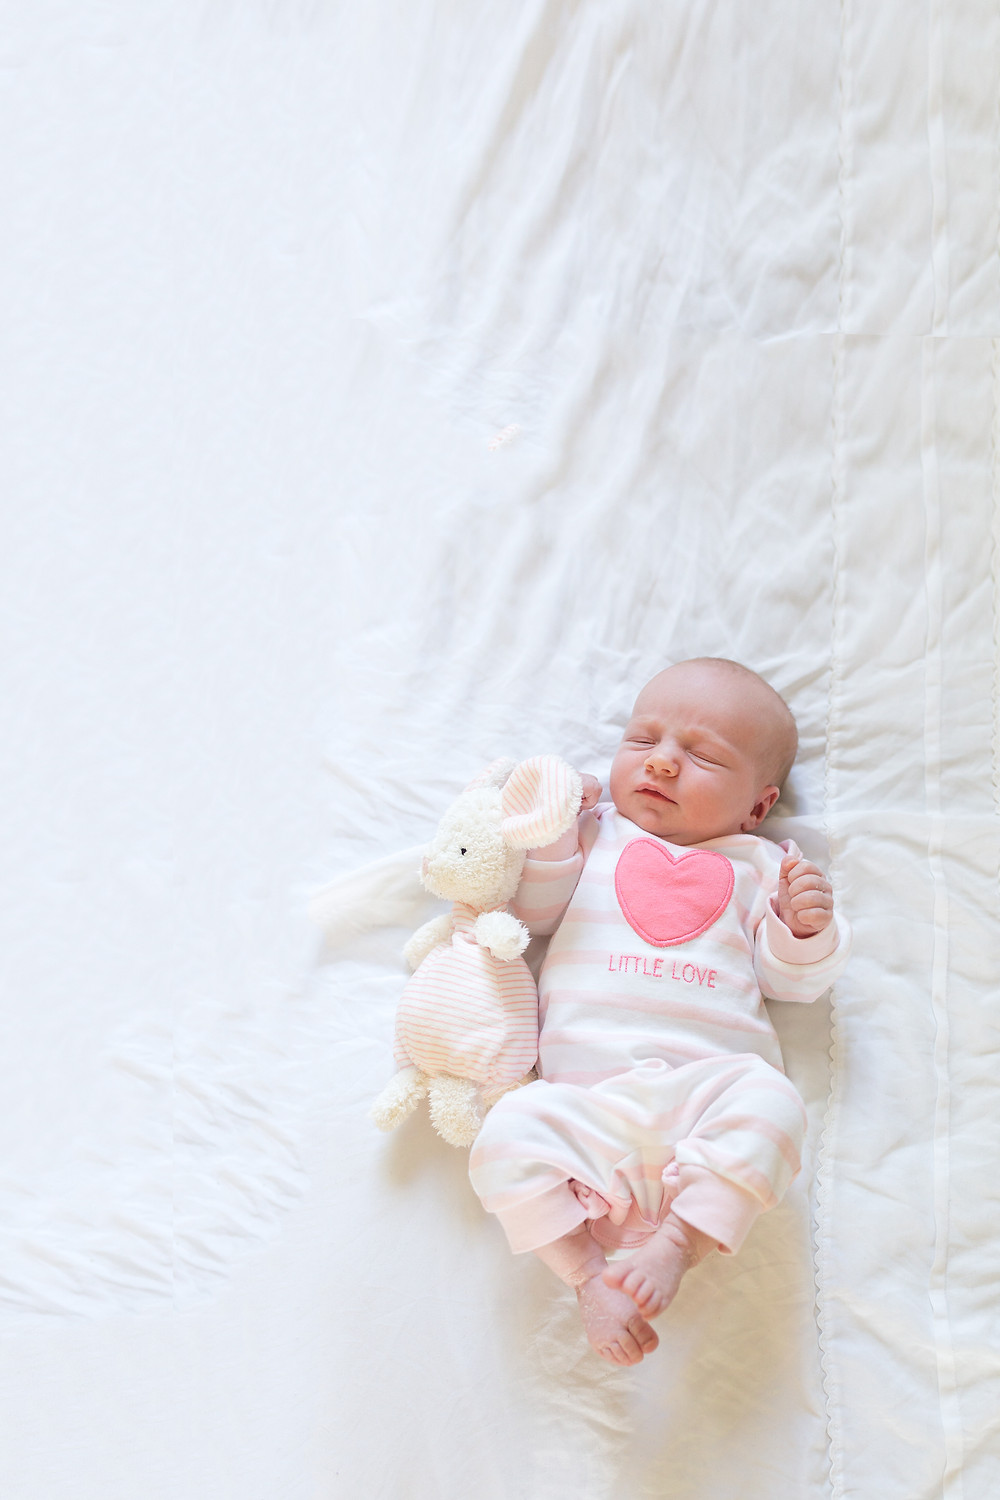 Newborn Photographer Southampton , Hampshire Newborn Photography Southampton, Hampshire Newborn Lifestyle Photography